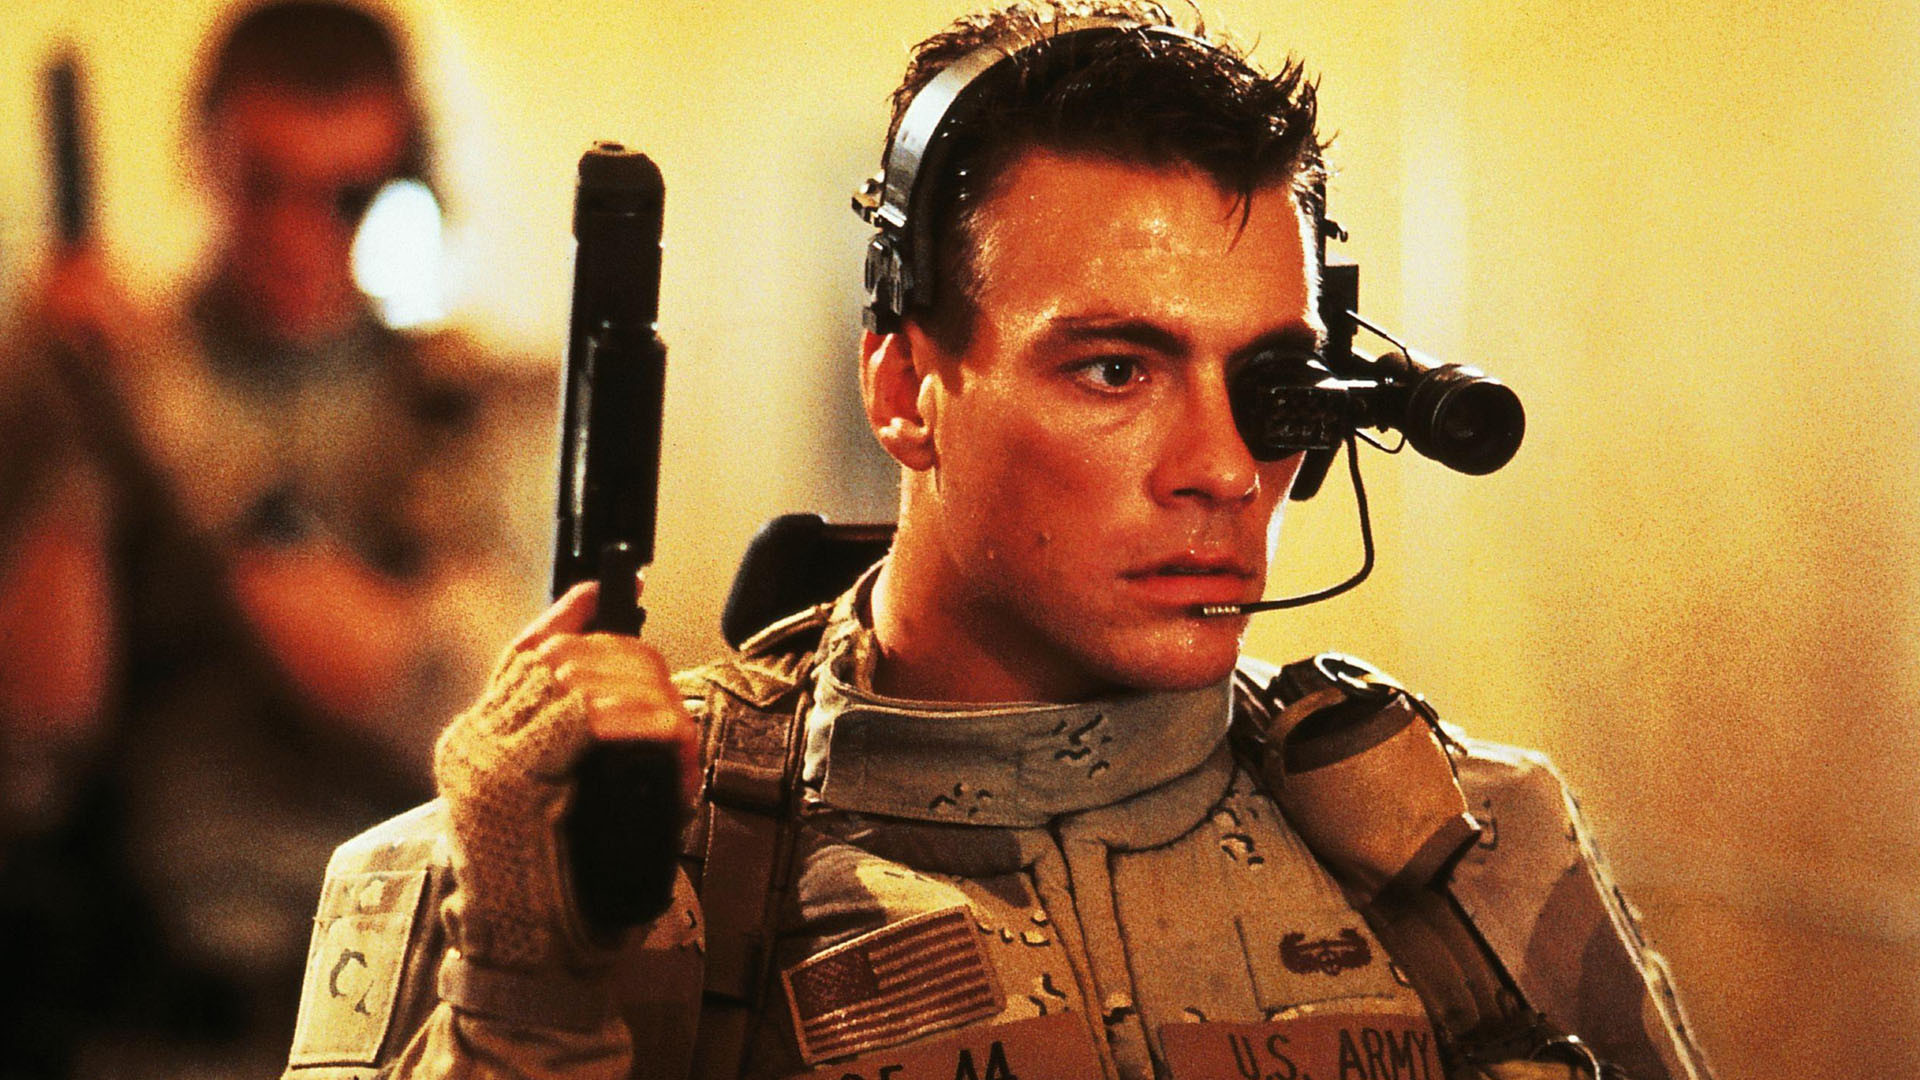 war in films universal soldier Action, crime, science fiction an american soldier who had been killed during the vietnam war is revived 25 years later by the military as a semi-android, unisols, a high-tech soldier of the future after the failure of the initiative to erase all the soldier's memories.